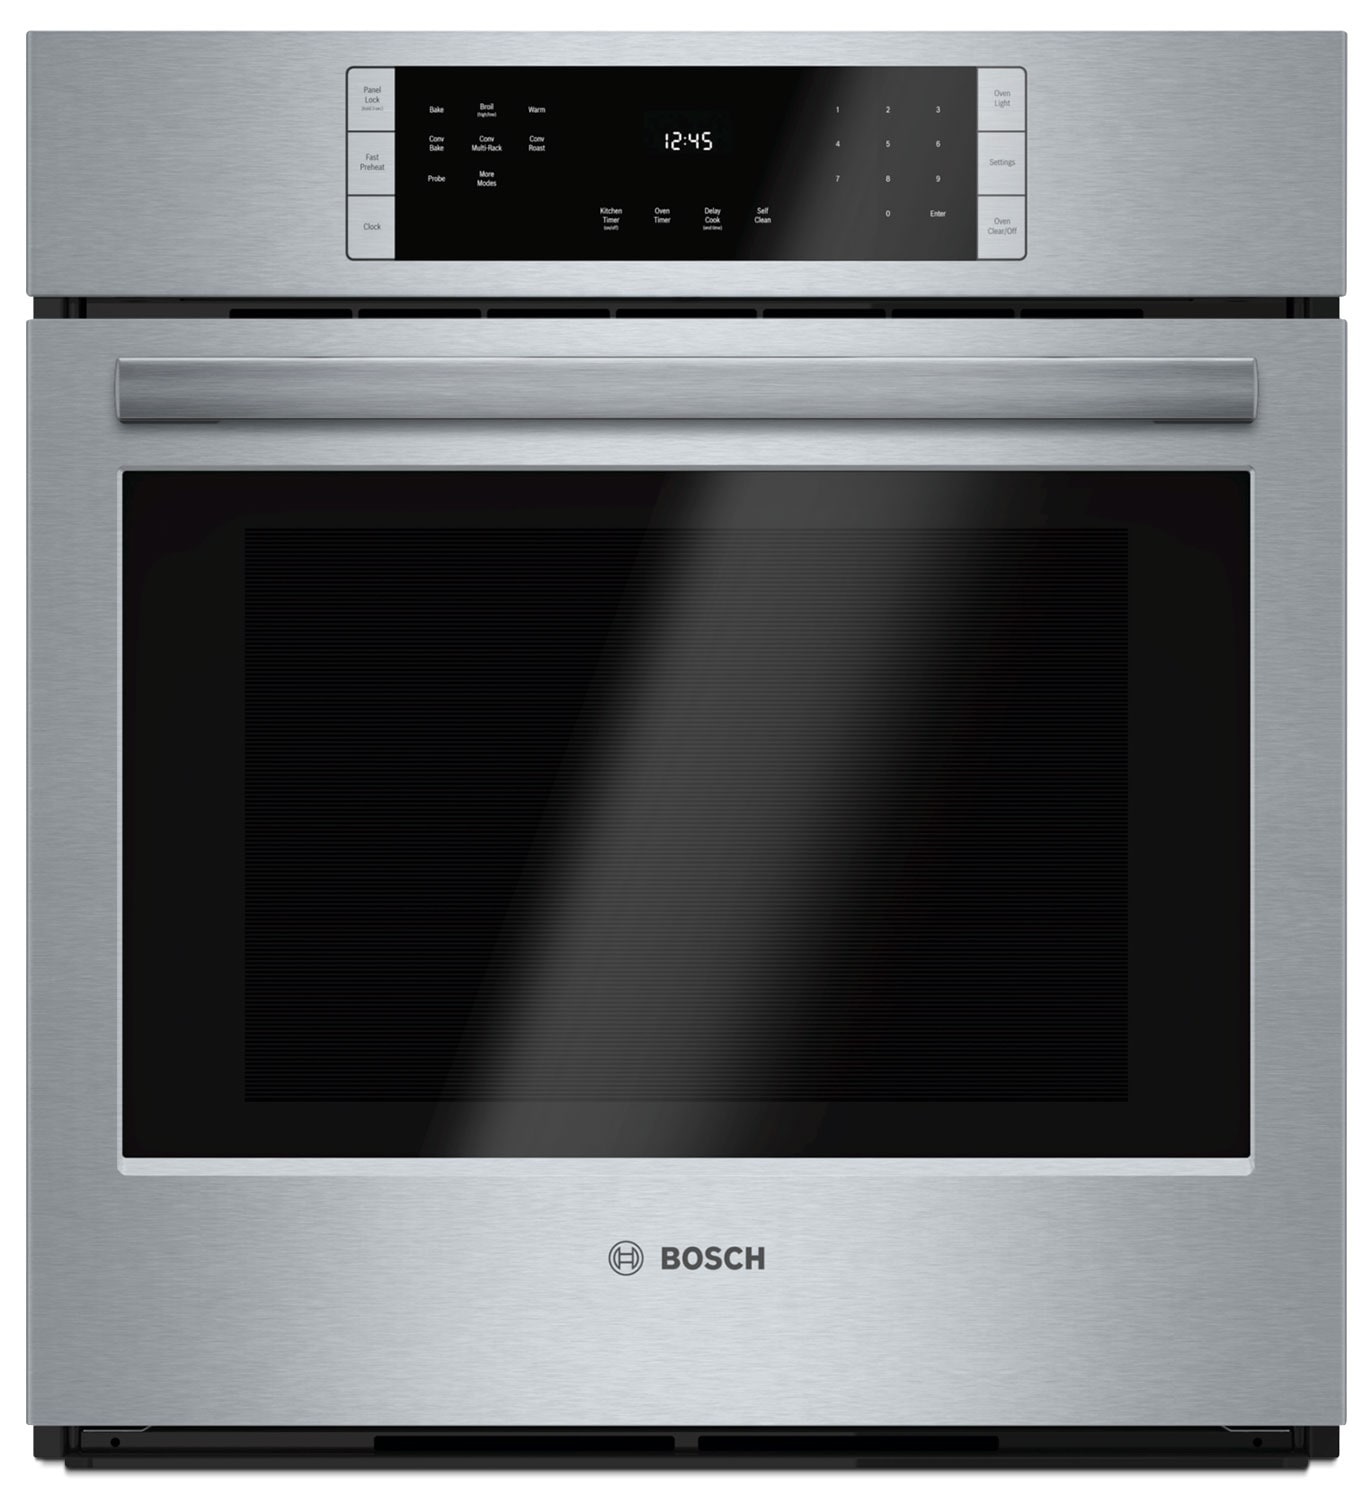 Bosch Stainless Steel Wall Oven (3.9 Cu. Ft.) - HBN8451UC